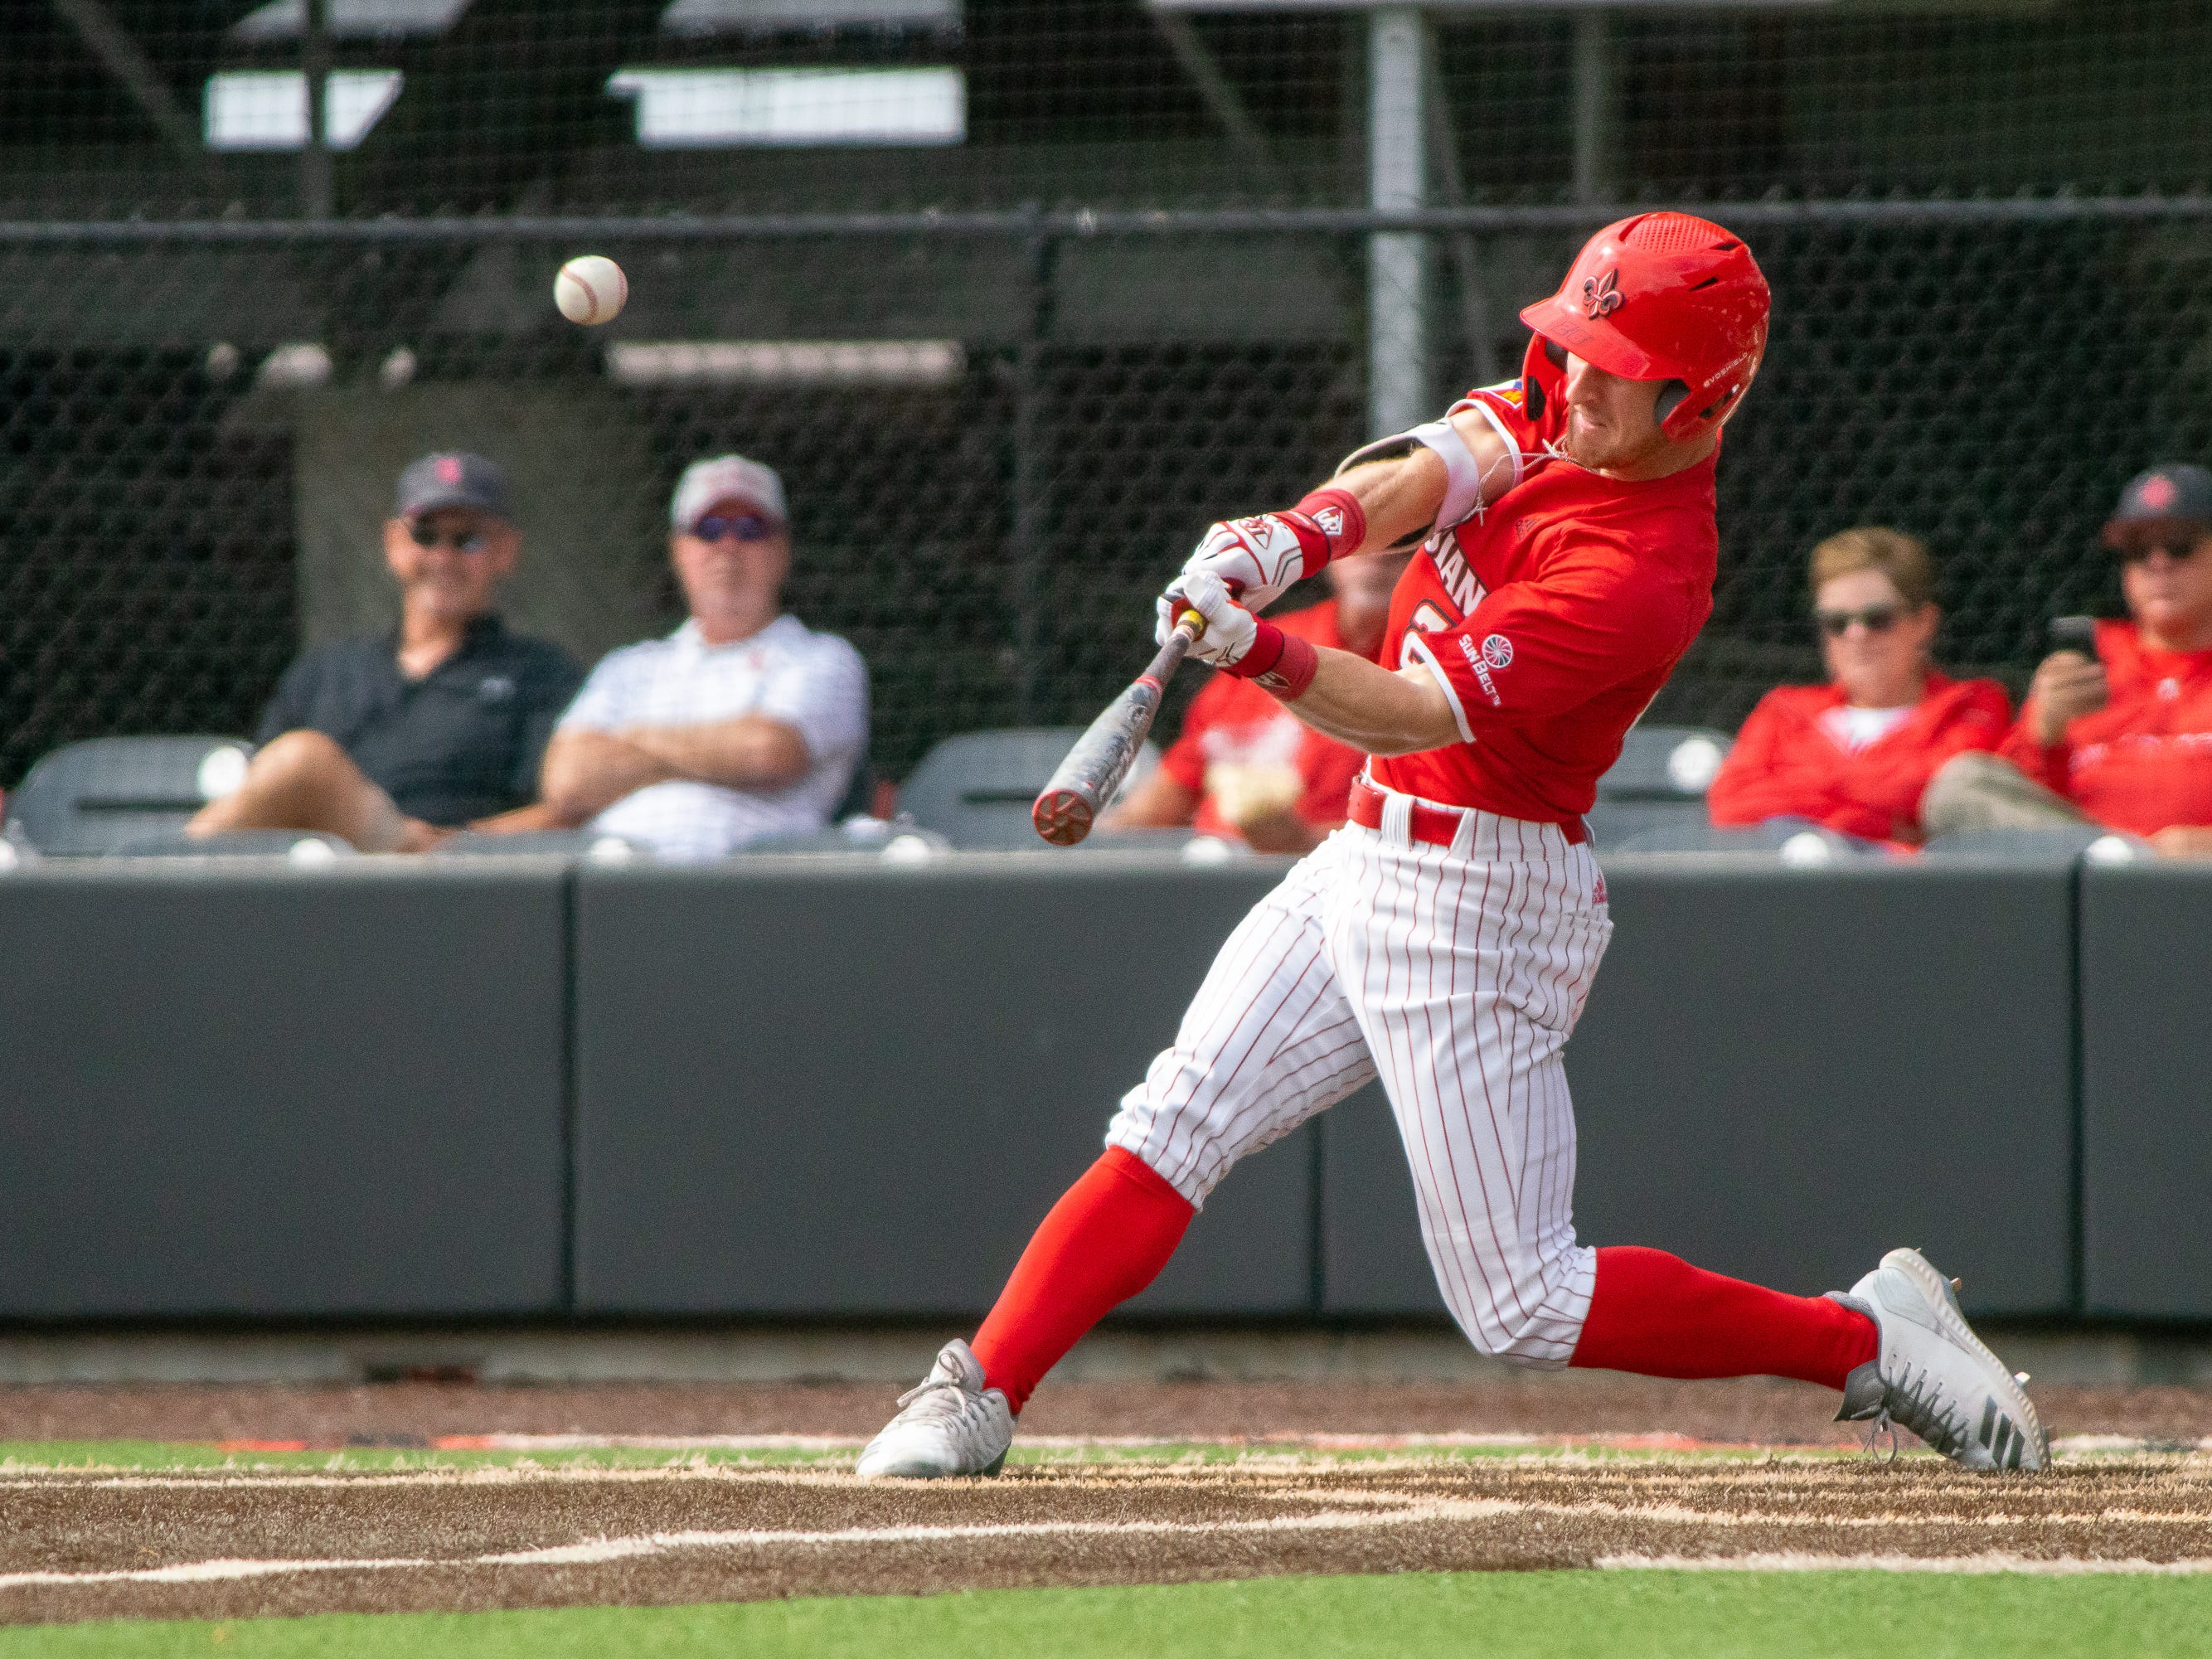 UL's Daniel Lahare hits the incoming ball as the Ragin' Cajuns take on the Loyola-Marymount Lions at M.L. Tigue Moore Field on Saturday, March 9, 2019.